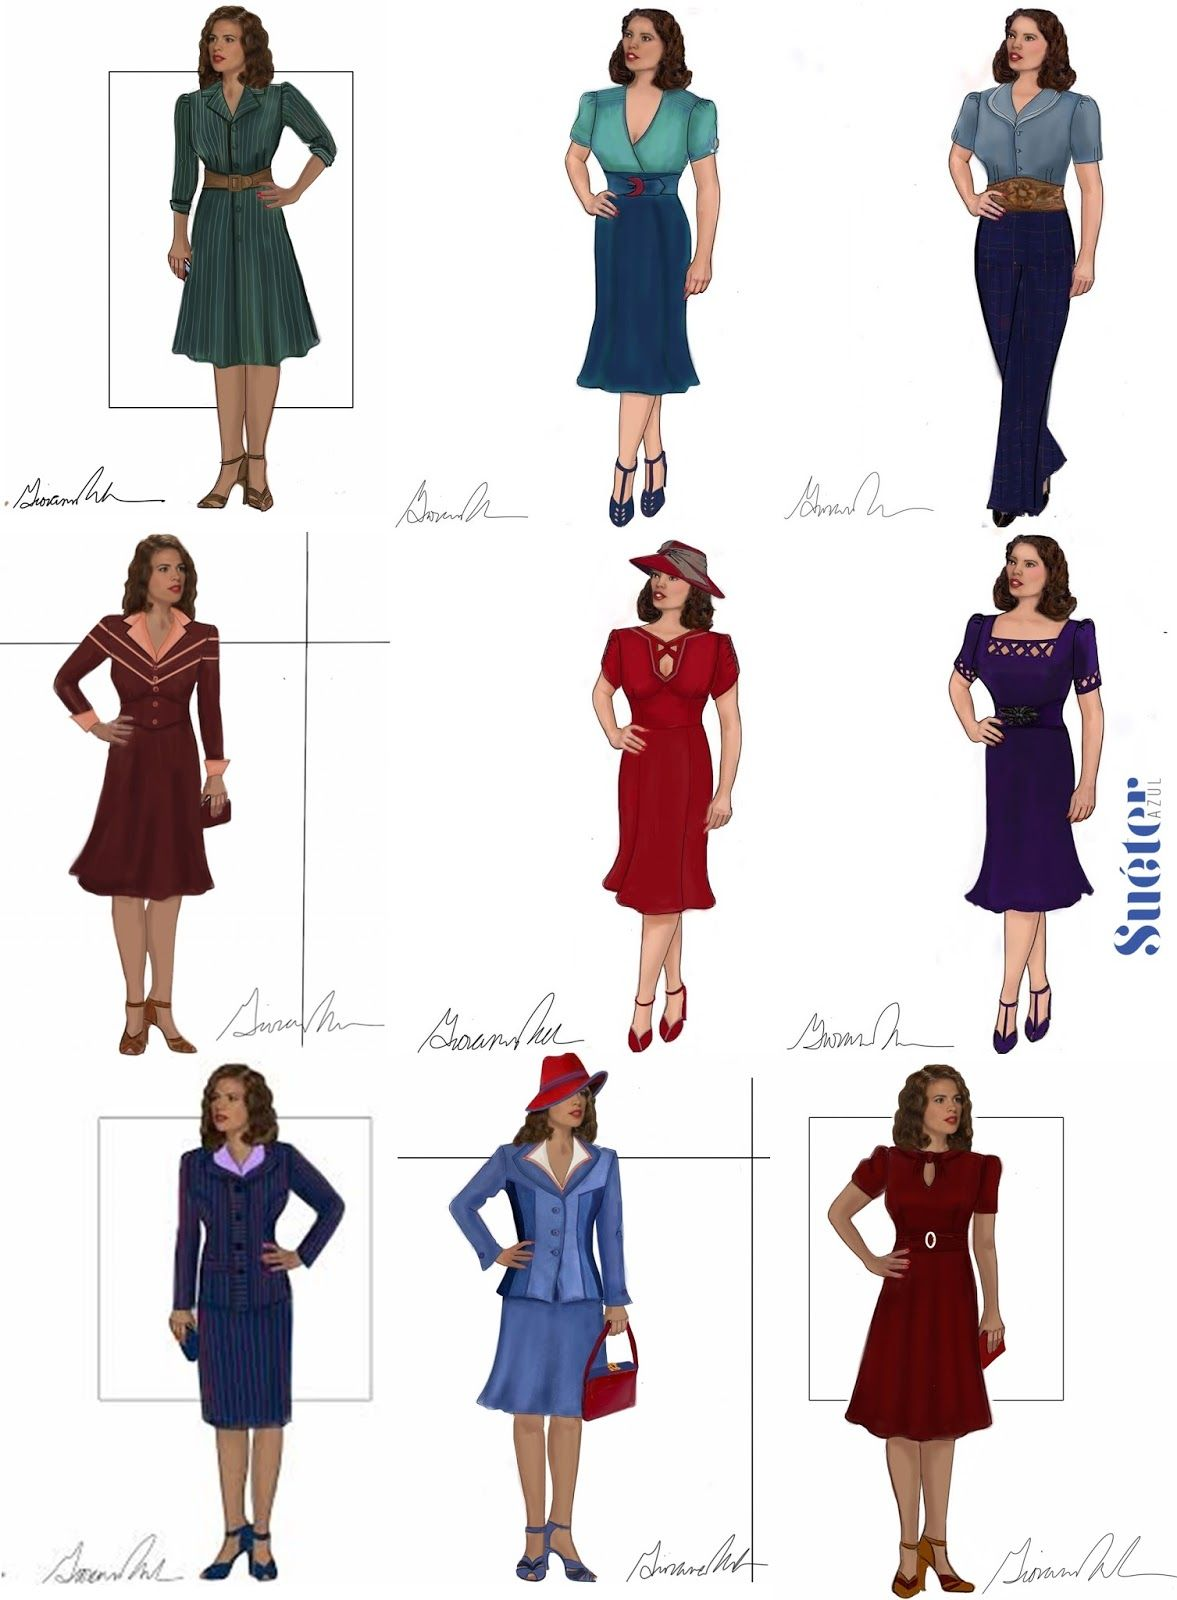 agent peggy carter costume outfit visit now to grab yourself a super hero